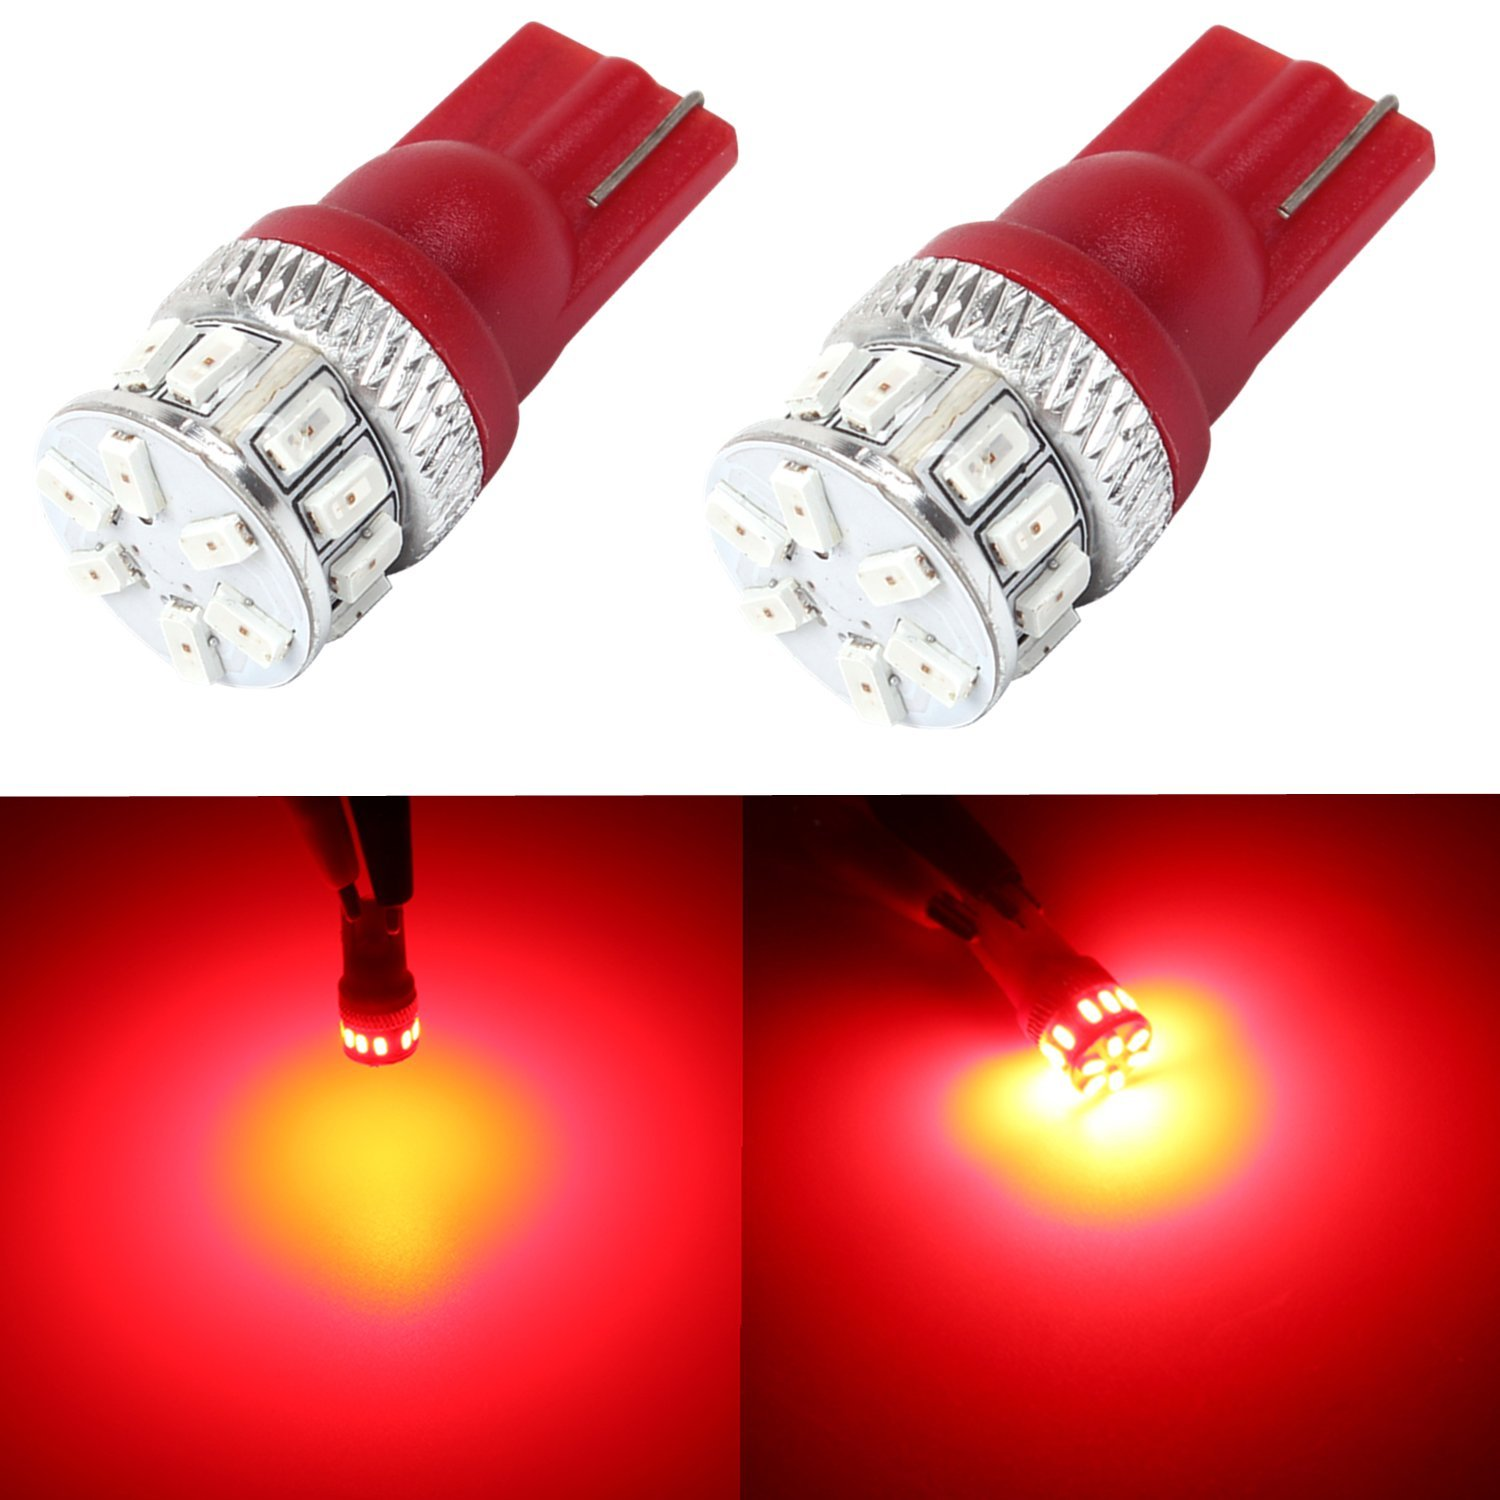 Alla Lighting Super Bright T10 194 Red LED Bulbs High Power 3014 18-SMD 12V LED 194 168 2825 175 W5W Bulb T10 Wedge for License Plate Interior Map Dome Trunk Side Marker Lights, Pure Red (Set of 2)